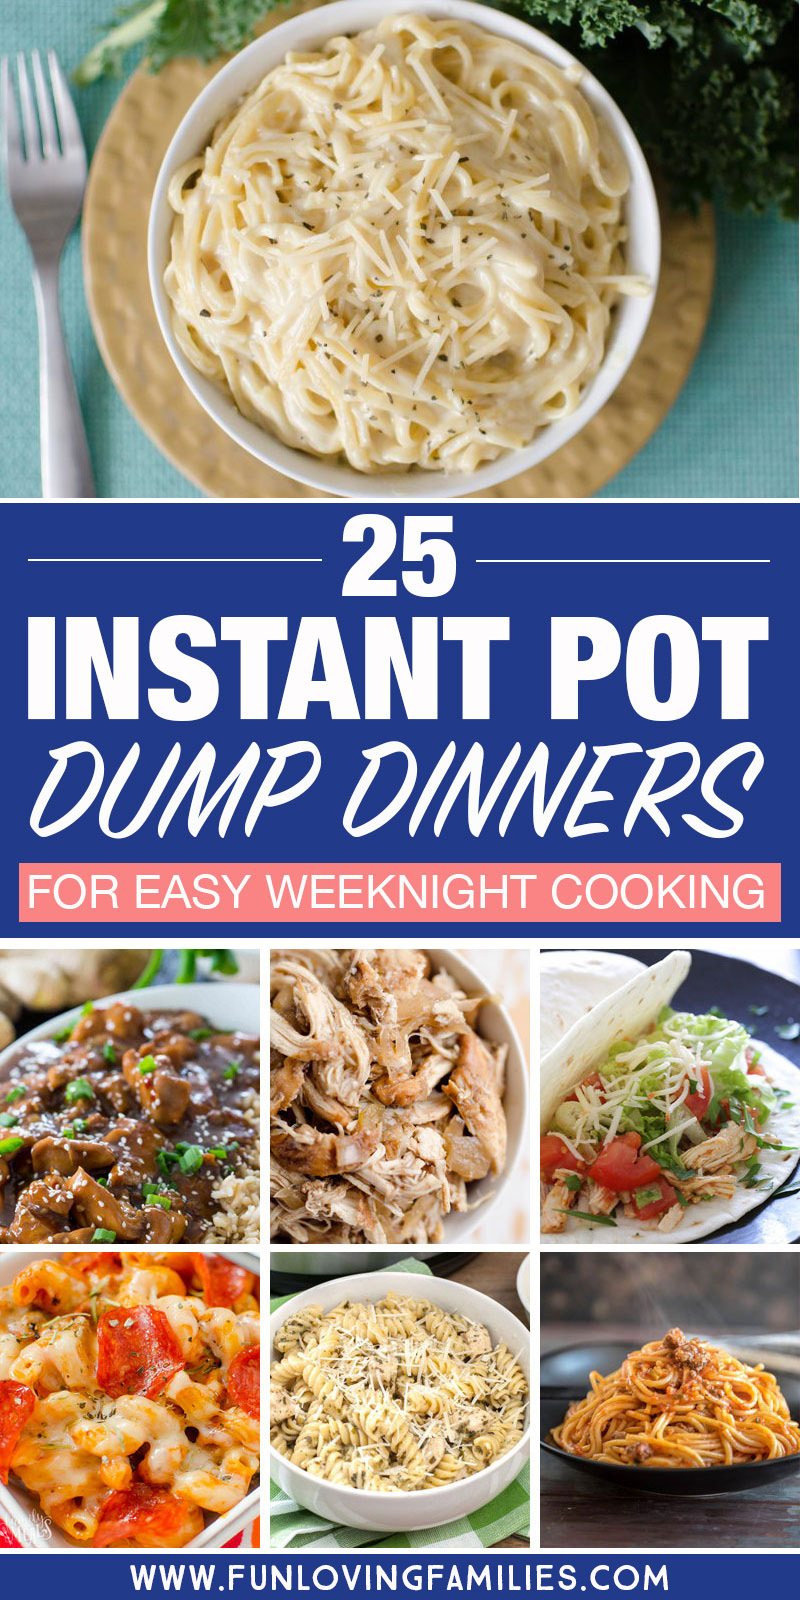 25 instant pot dump dinners for easy weeknight cooking